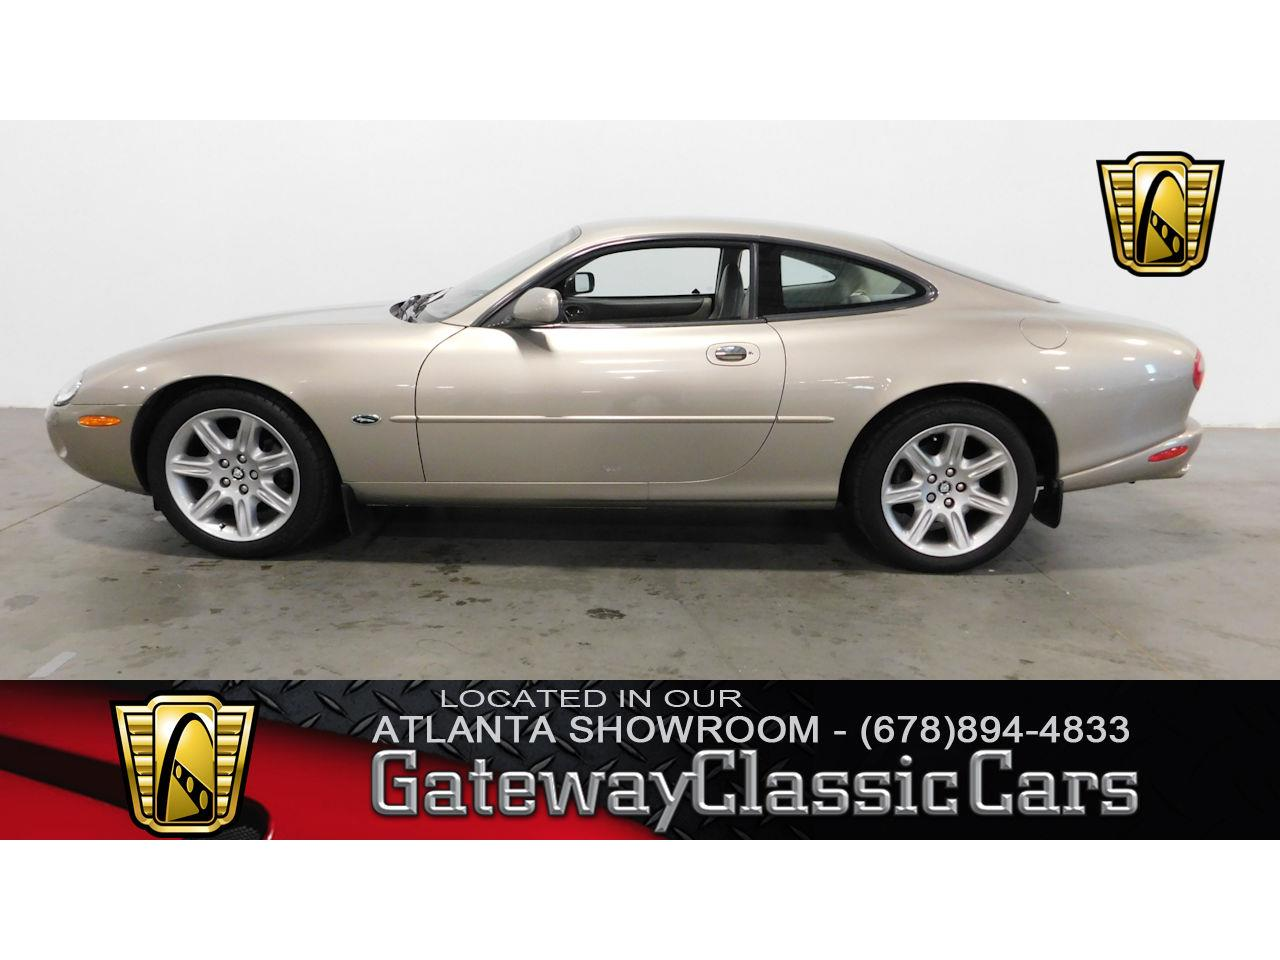 For Sale: 1997 Jaguar XK8 in Alpharetta, Georgia